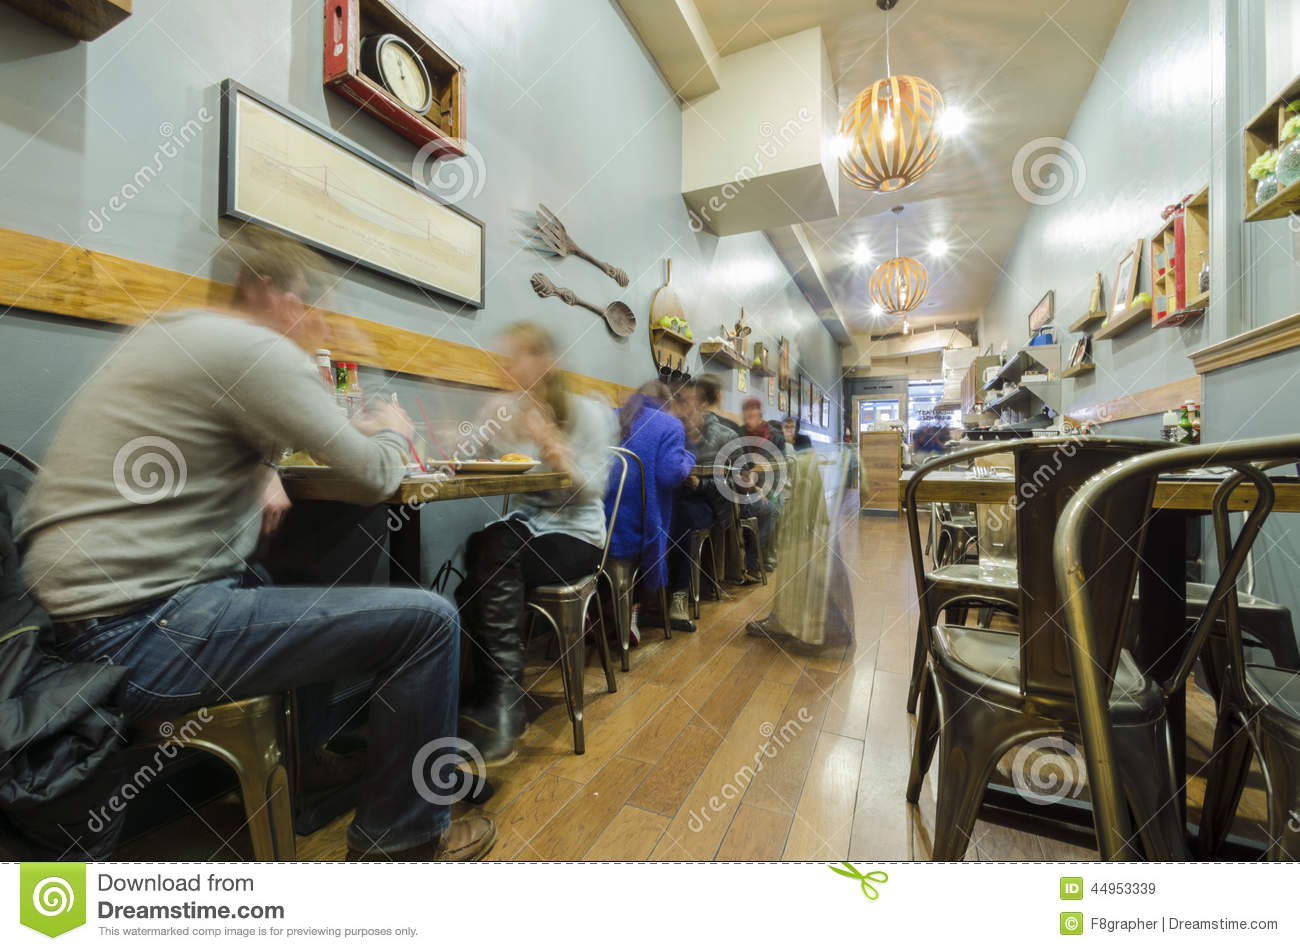 San francisco cafe restaurant editorial stock image   image: 44953339